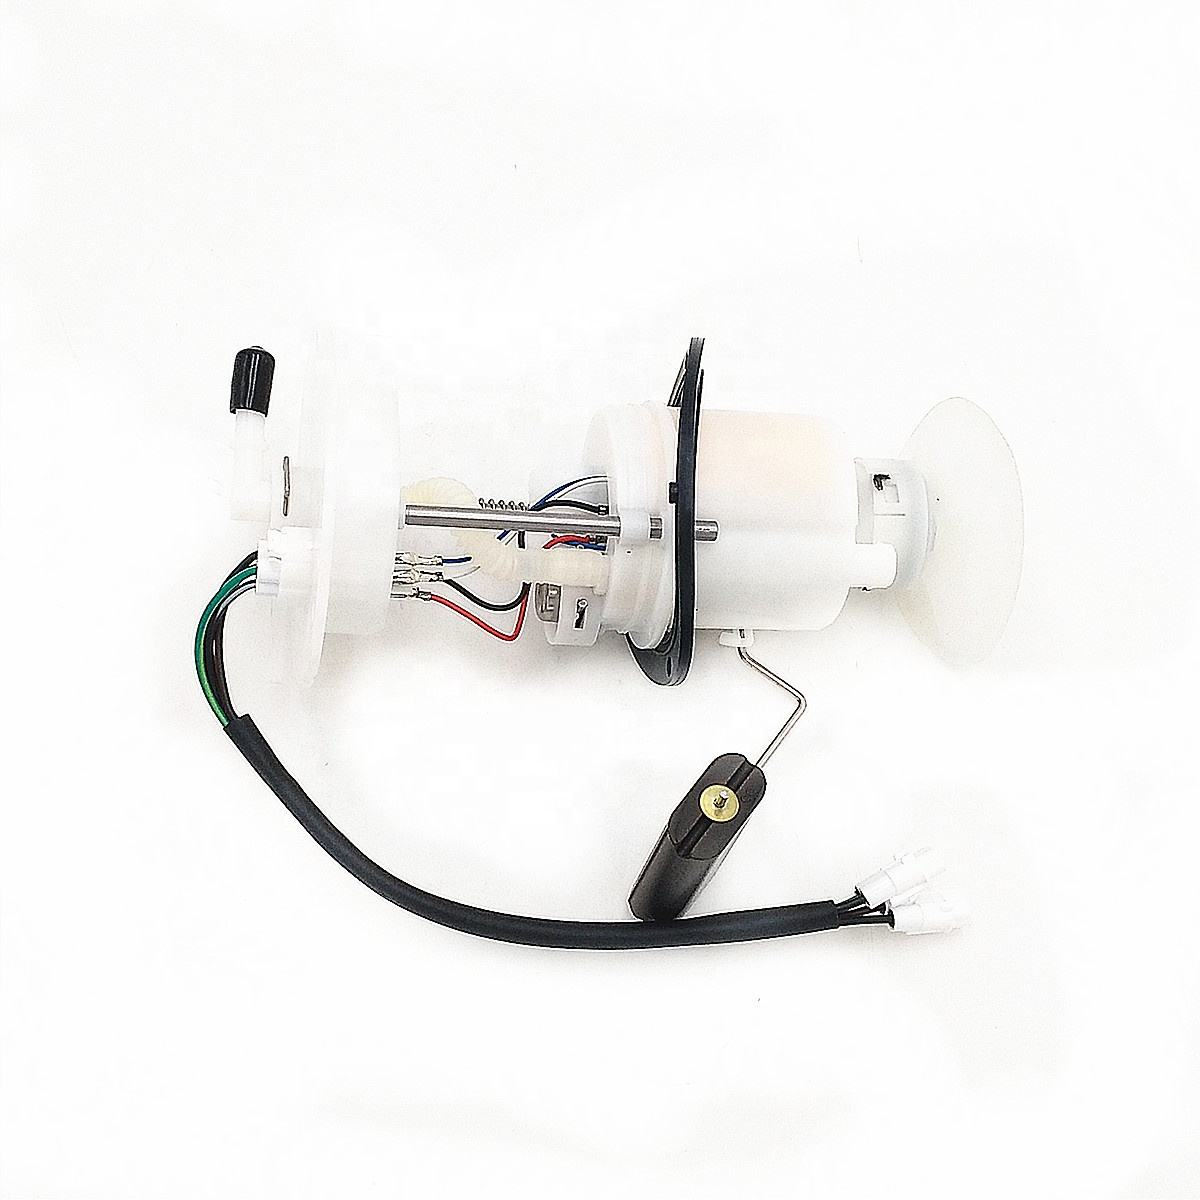 Hisun 500 700 atv fuel pump for dune buggy 4x4